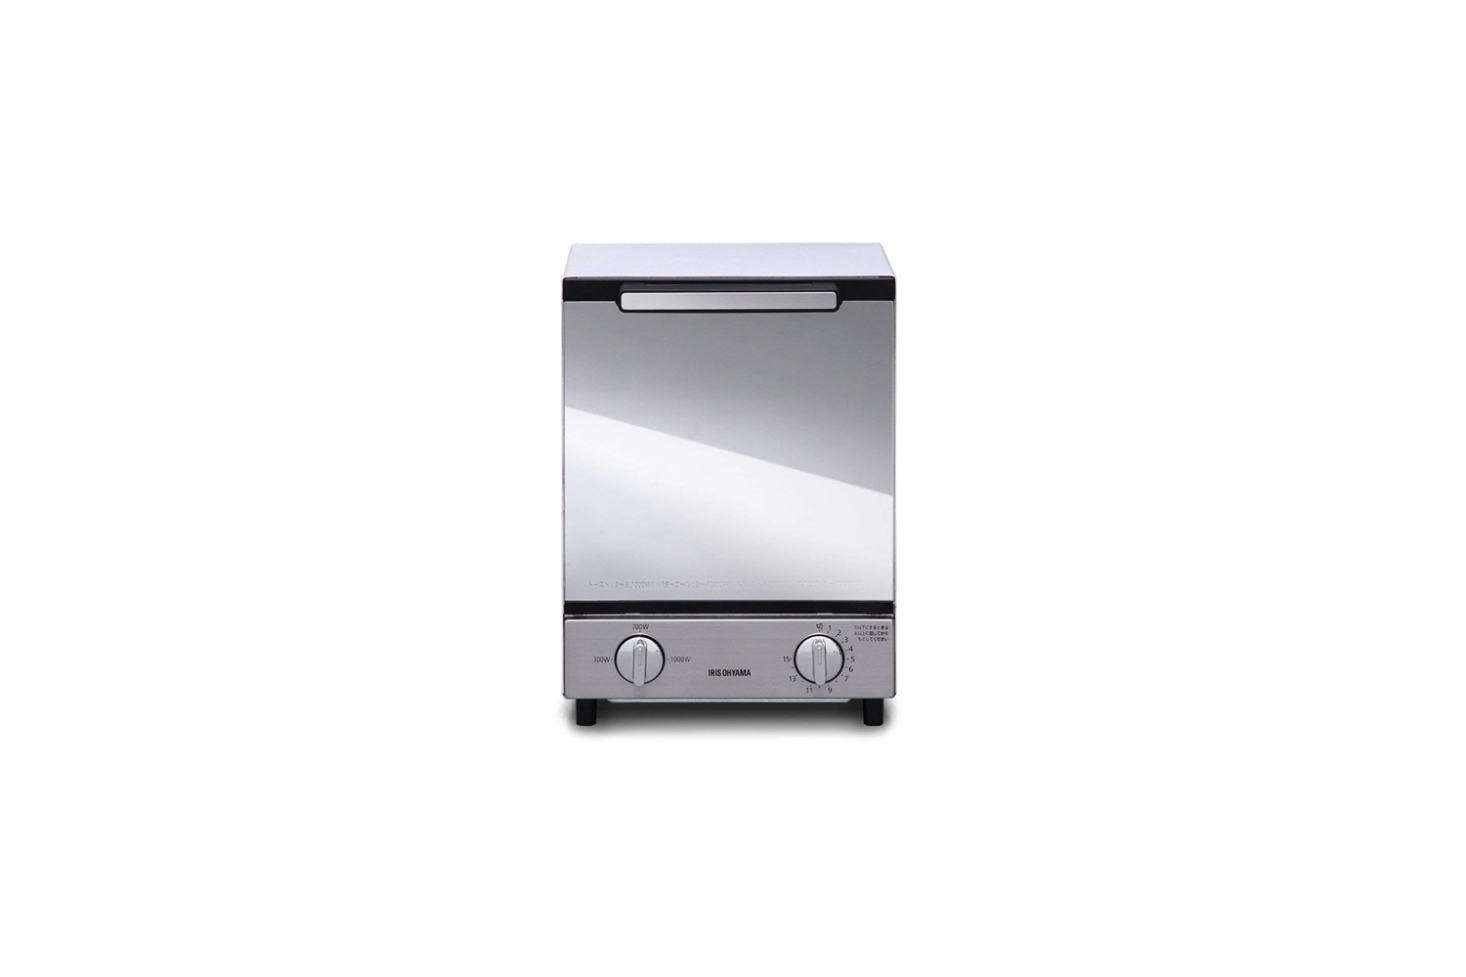 The Iris Ohyama Mirror Oven Toaster Vertical Type is made of powder coated steel with a mirrored glass door. It measures about 7.5 inches wide; $98.39 on Amazon. (Power supply AC 0 V 50/60 Hz.) It can also be sourced through Sano Shop out of Japan.